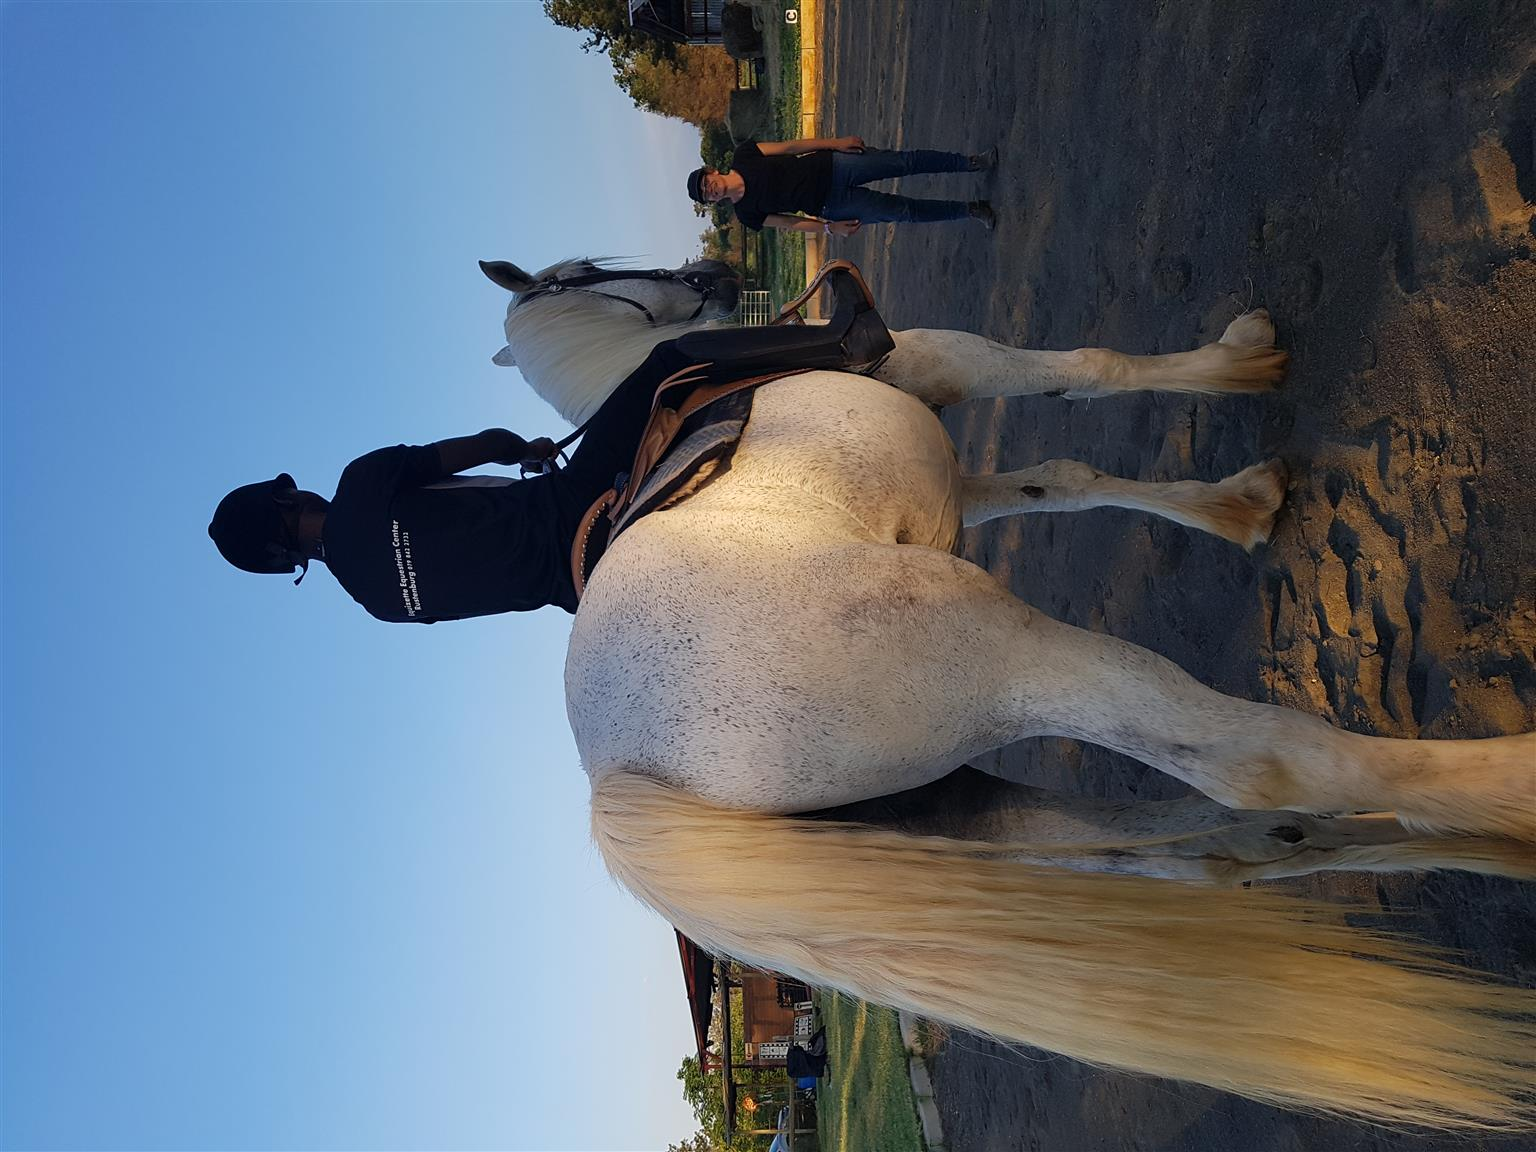 For sale: lovely percheron gelding thats over 18hh. Docile horse. Vet checks welcome.